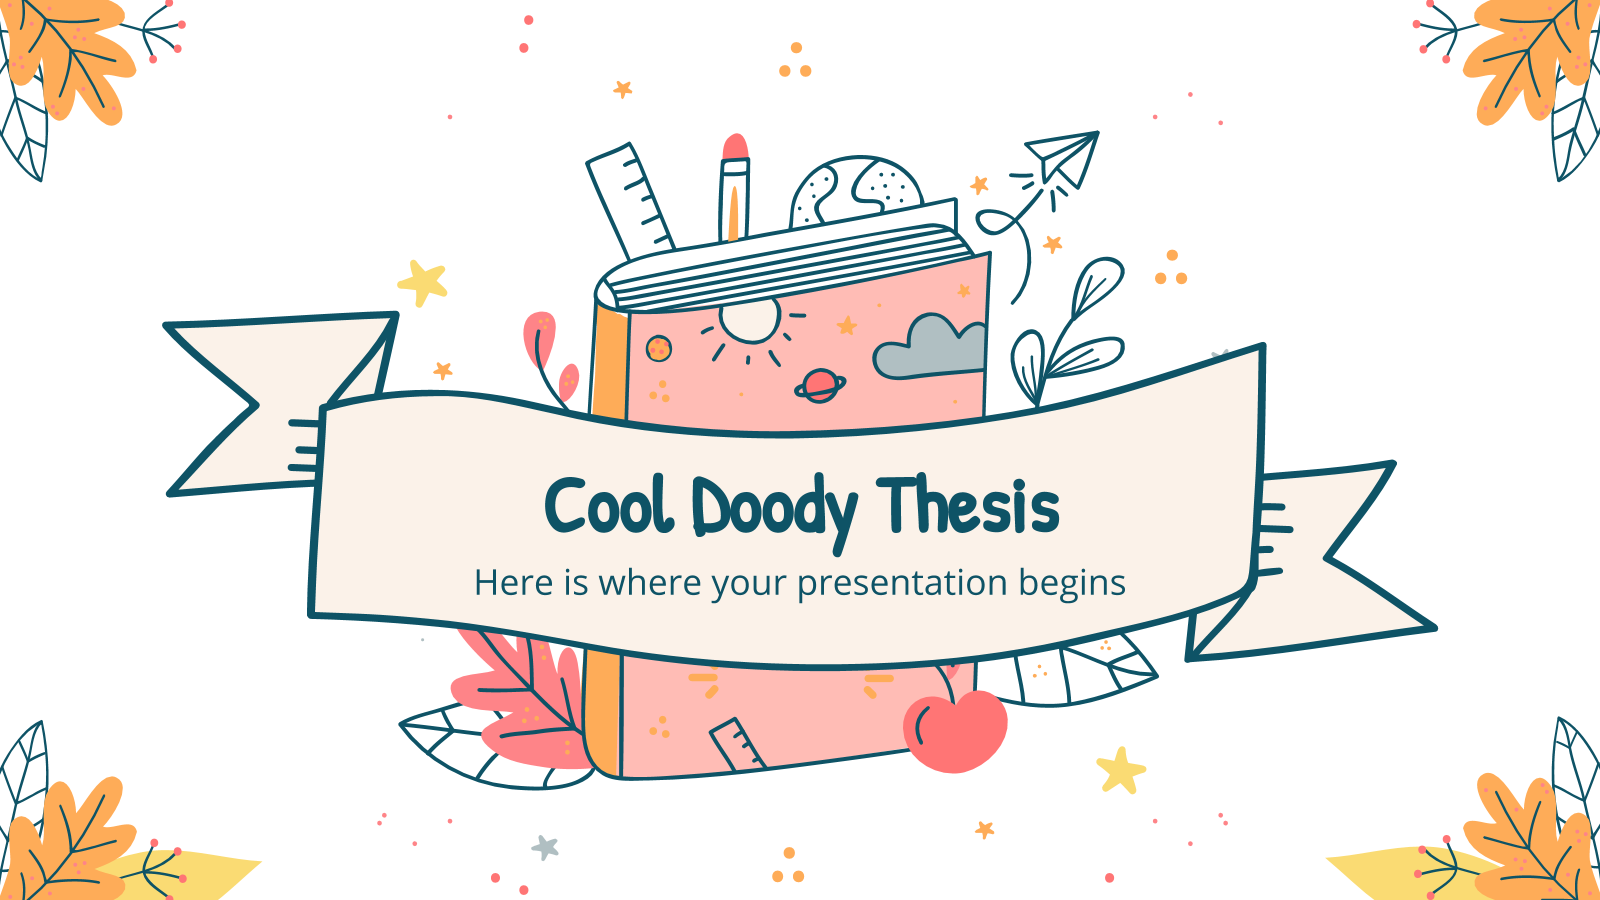 Cool Doody thesis presentation template